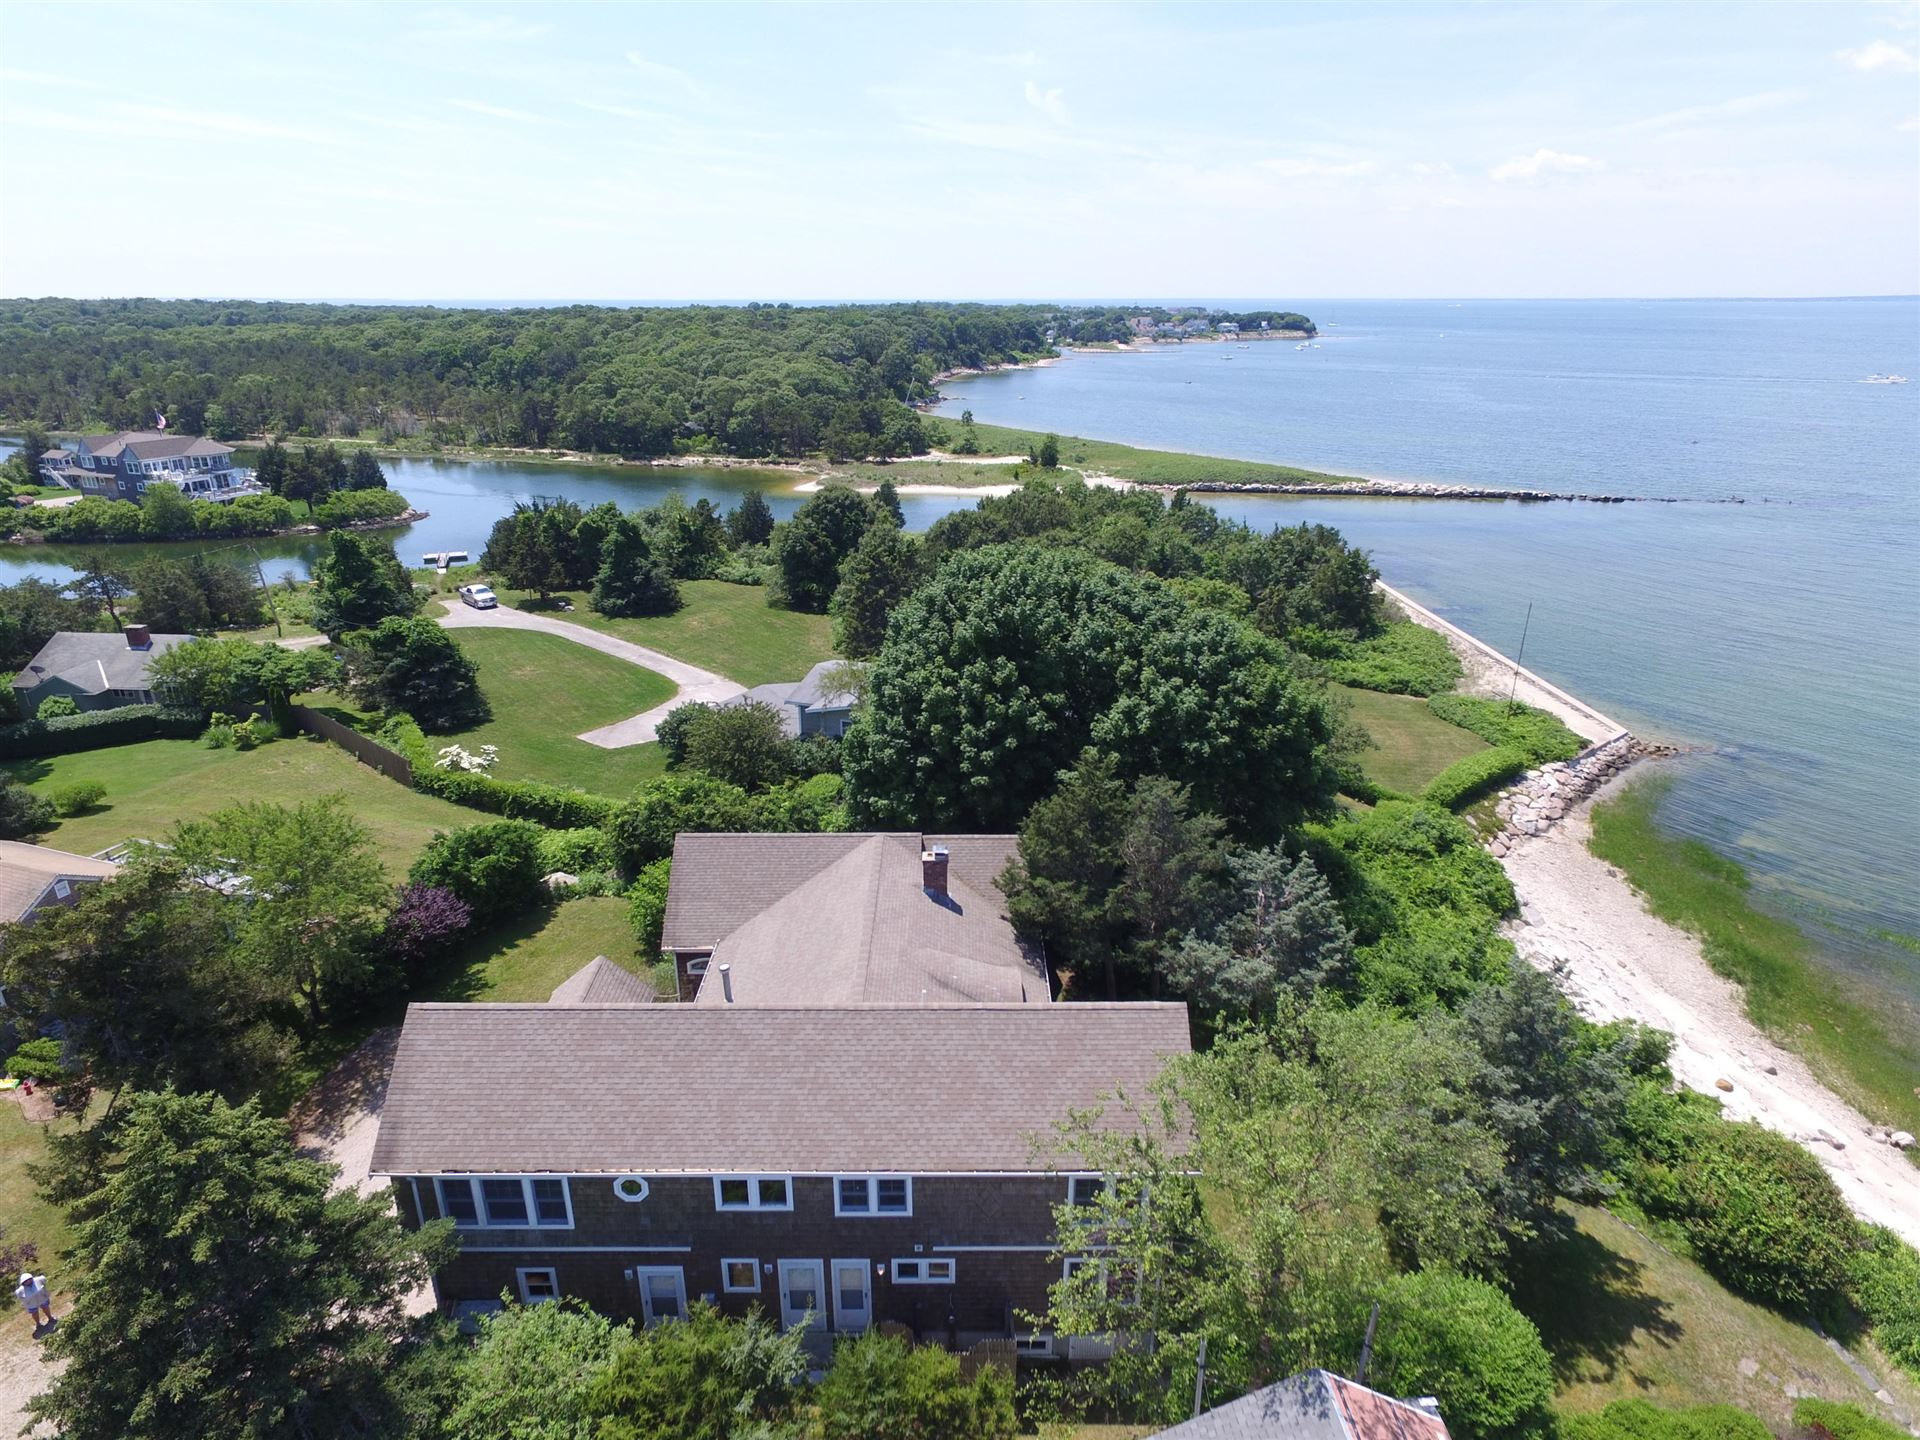 53 Bryant Point Road, North Falmouth, MA 02556 - #: 21904802